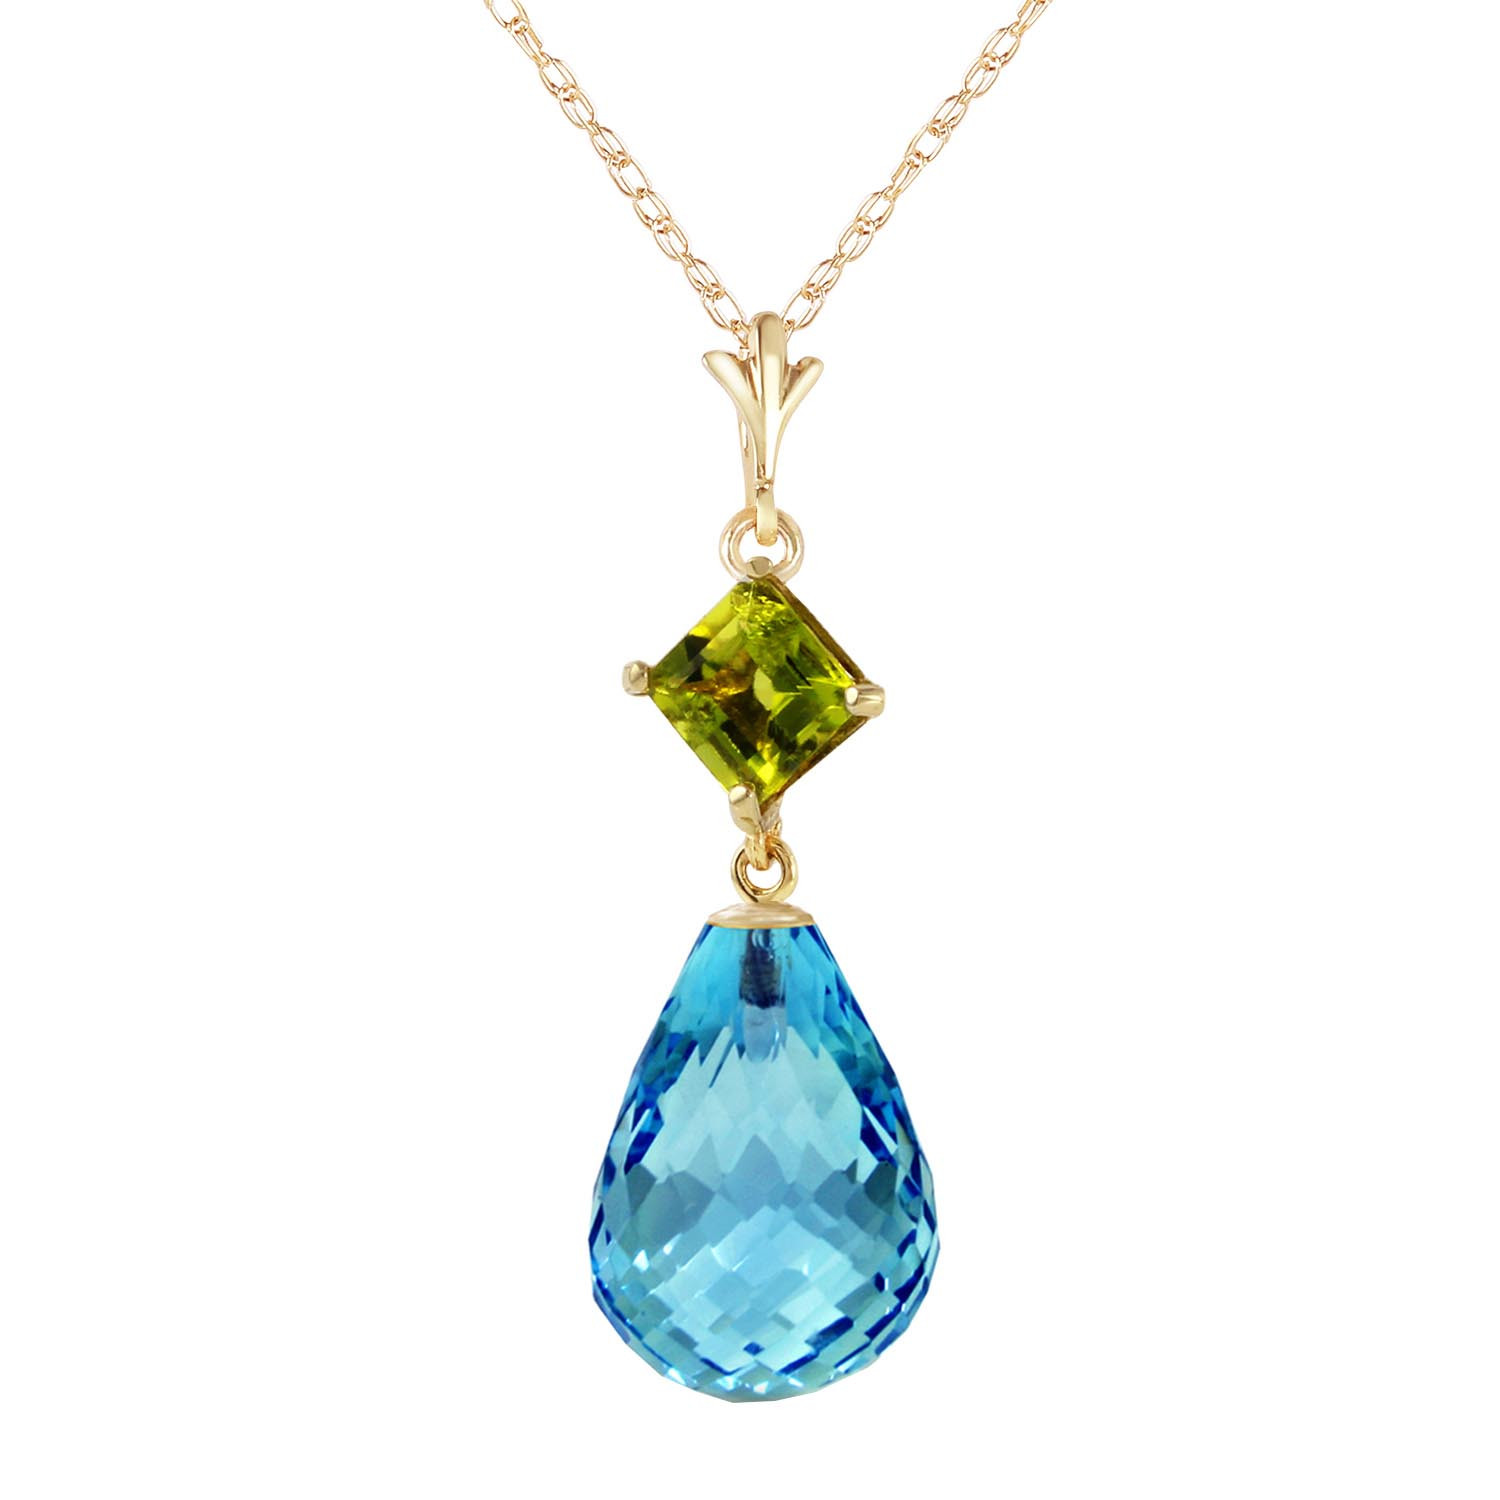 Blue Topaz & Peridot Pendant Necklace in 9ct Gold